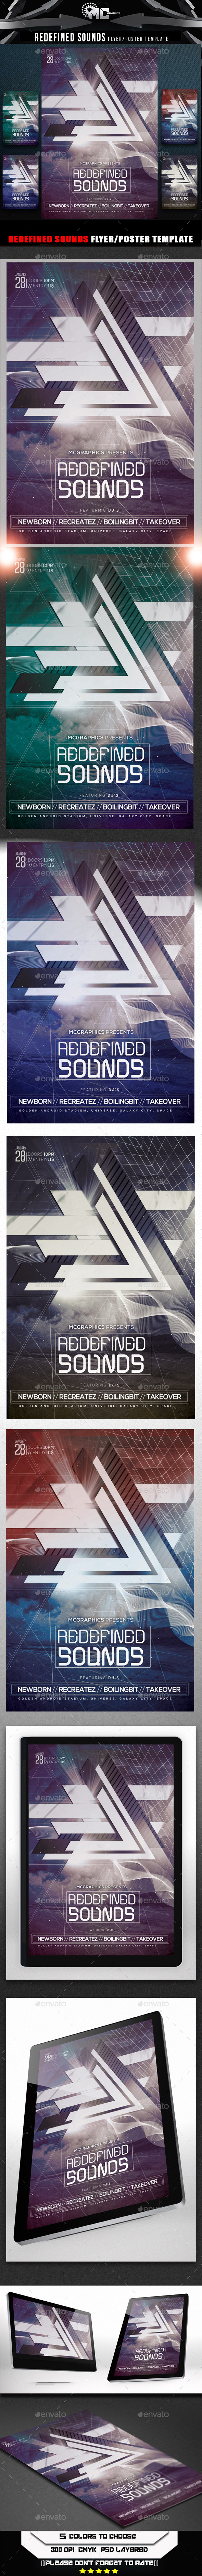 Redefined Sounds Flyer Template - Events Flyers